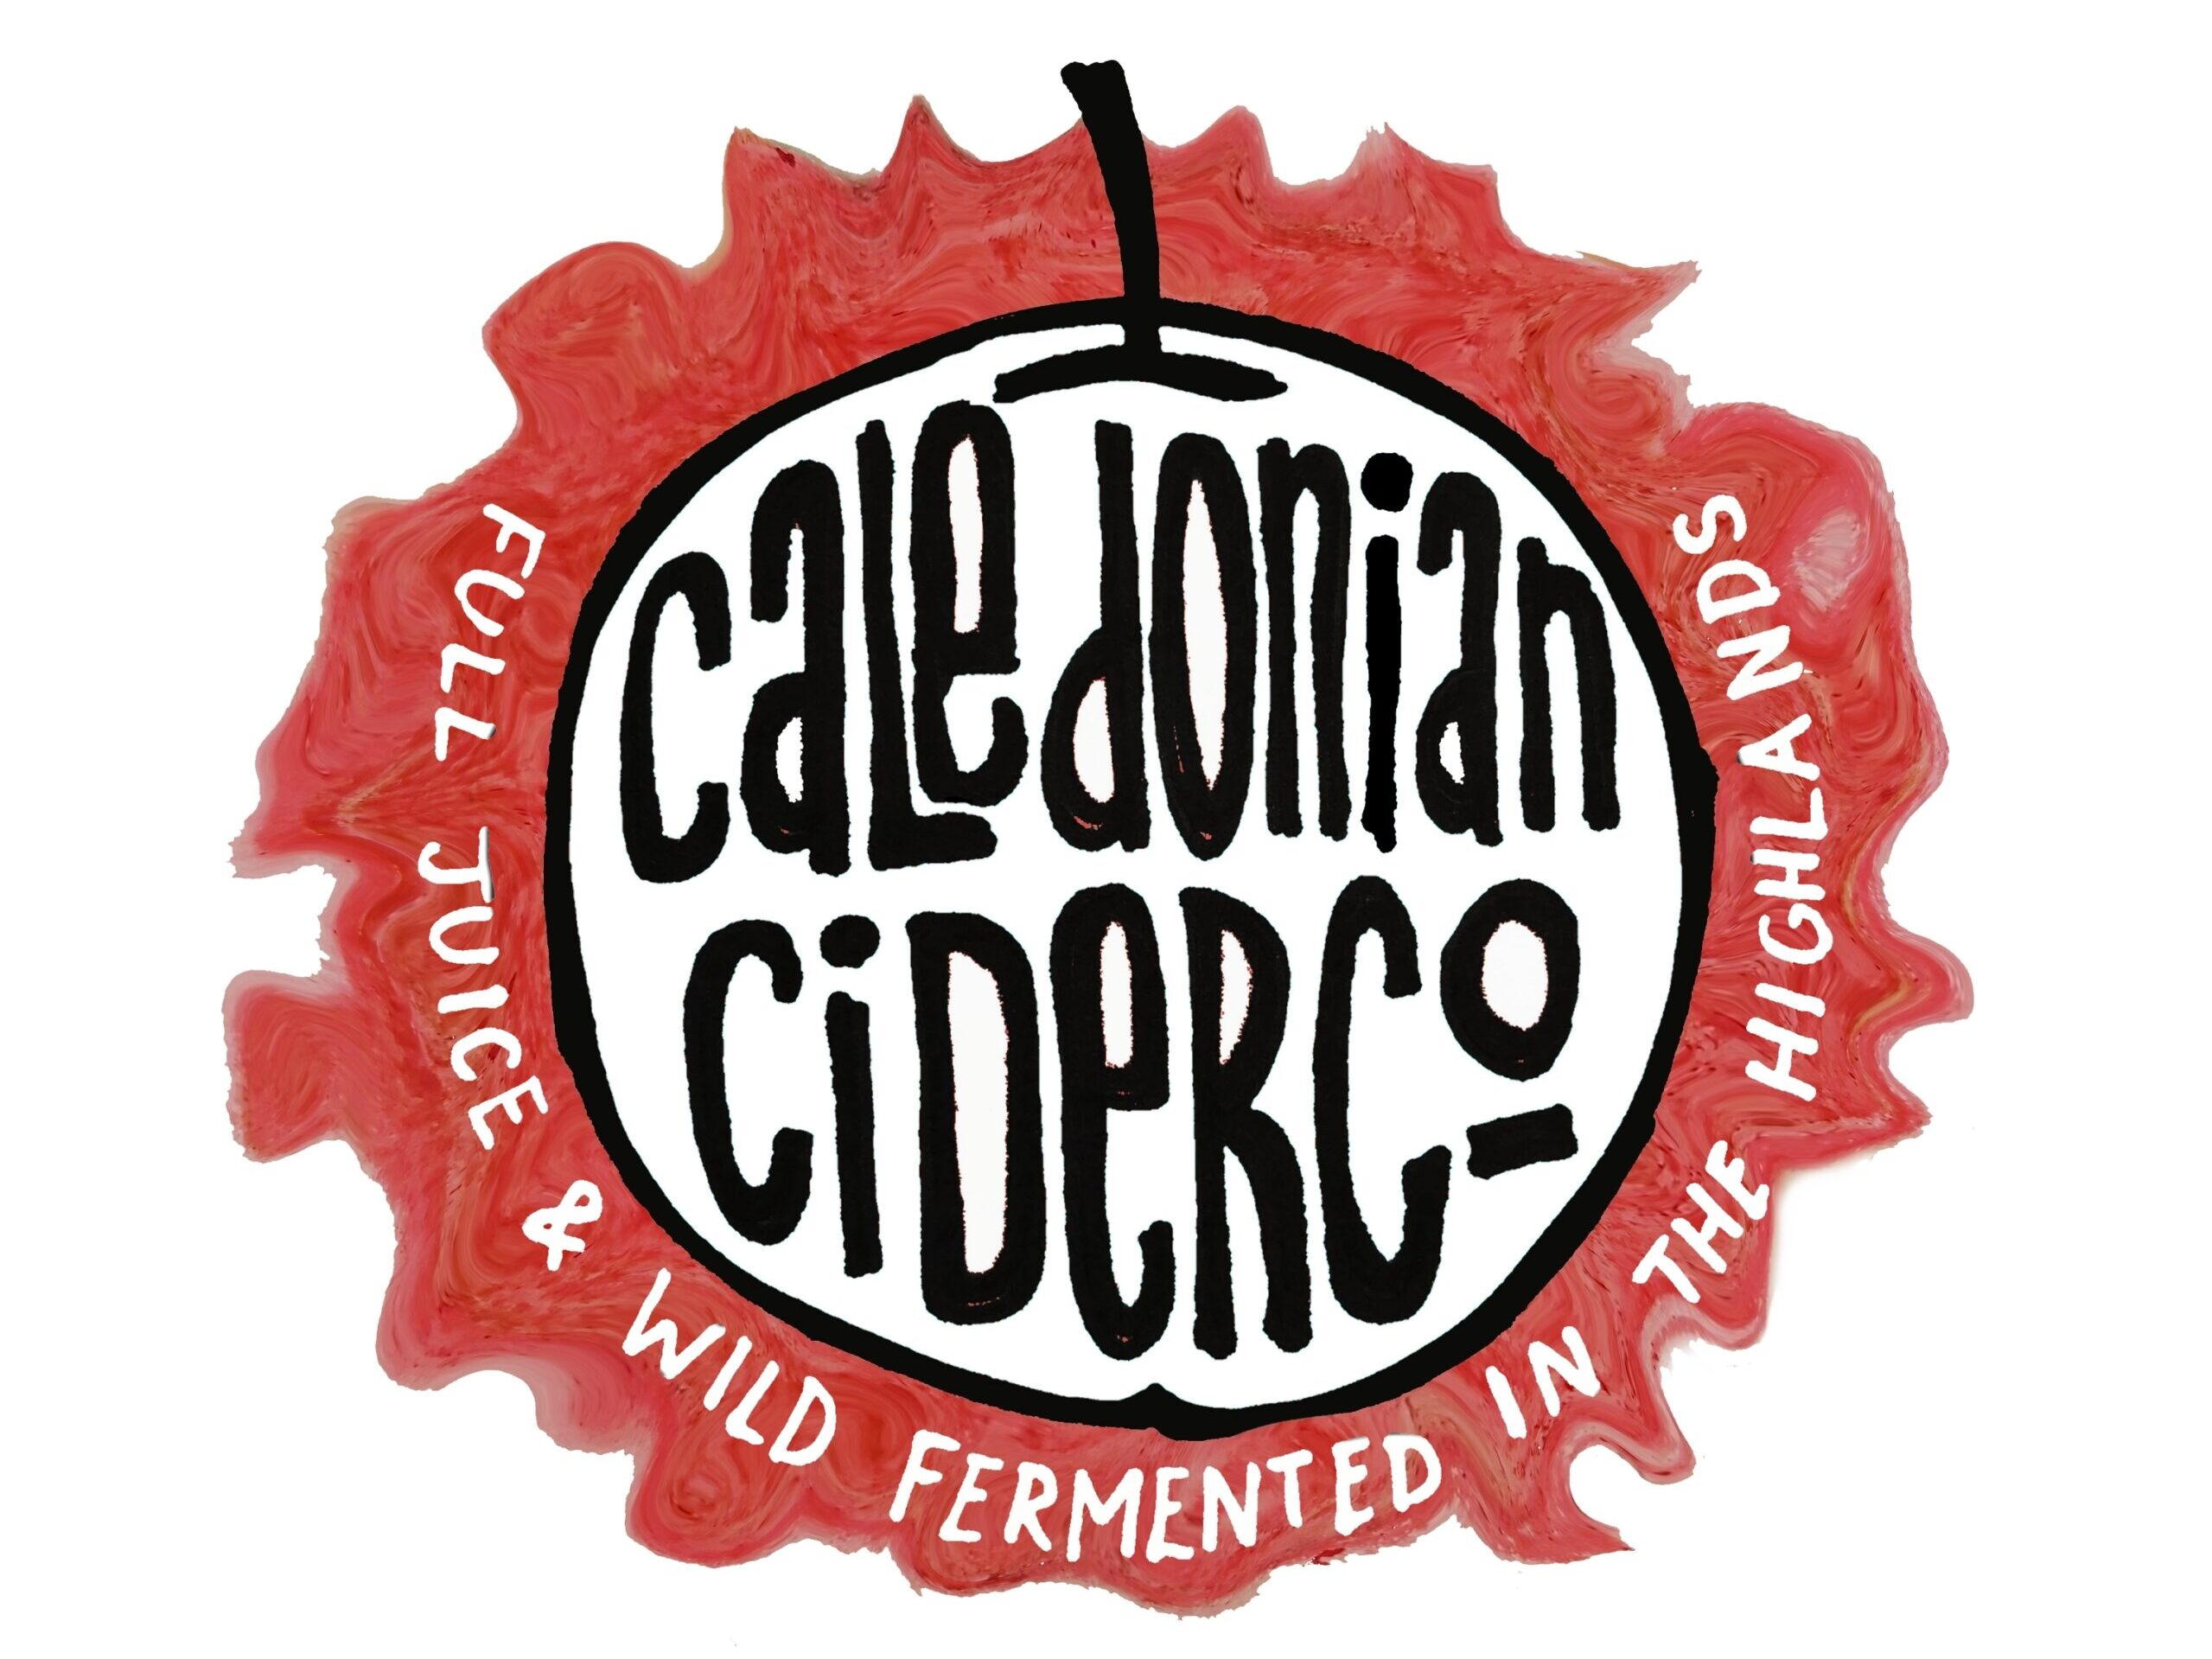 Caledonian Cider Co